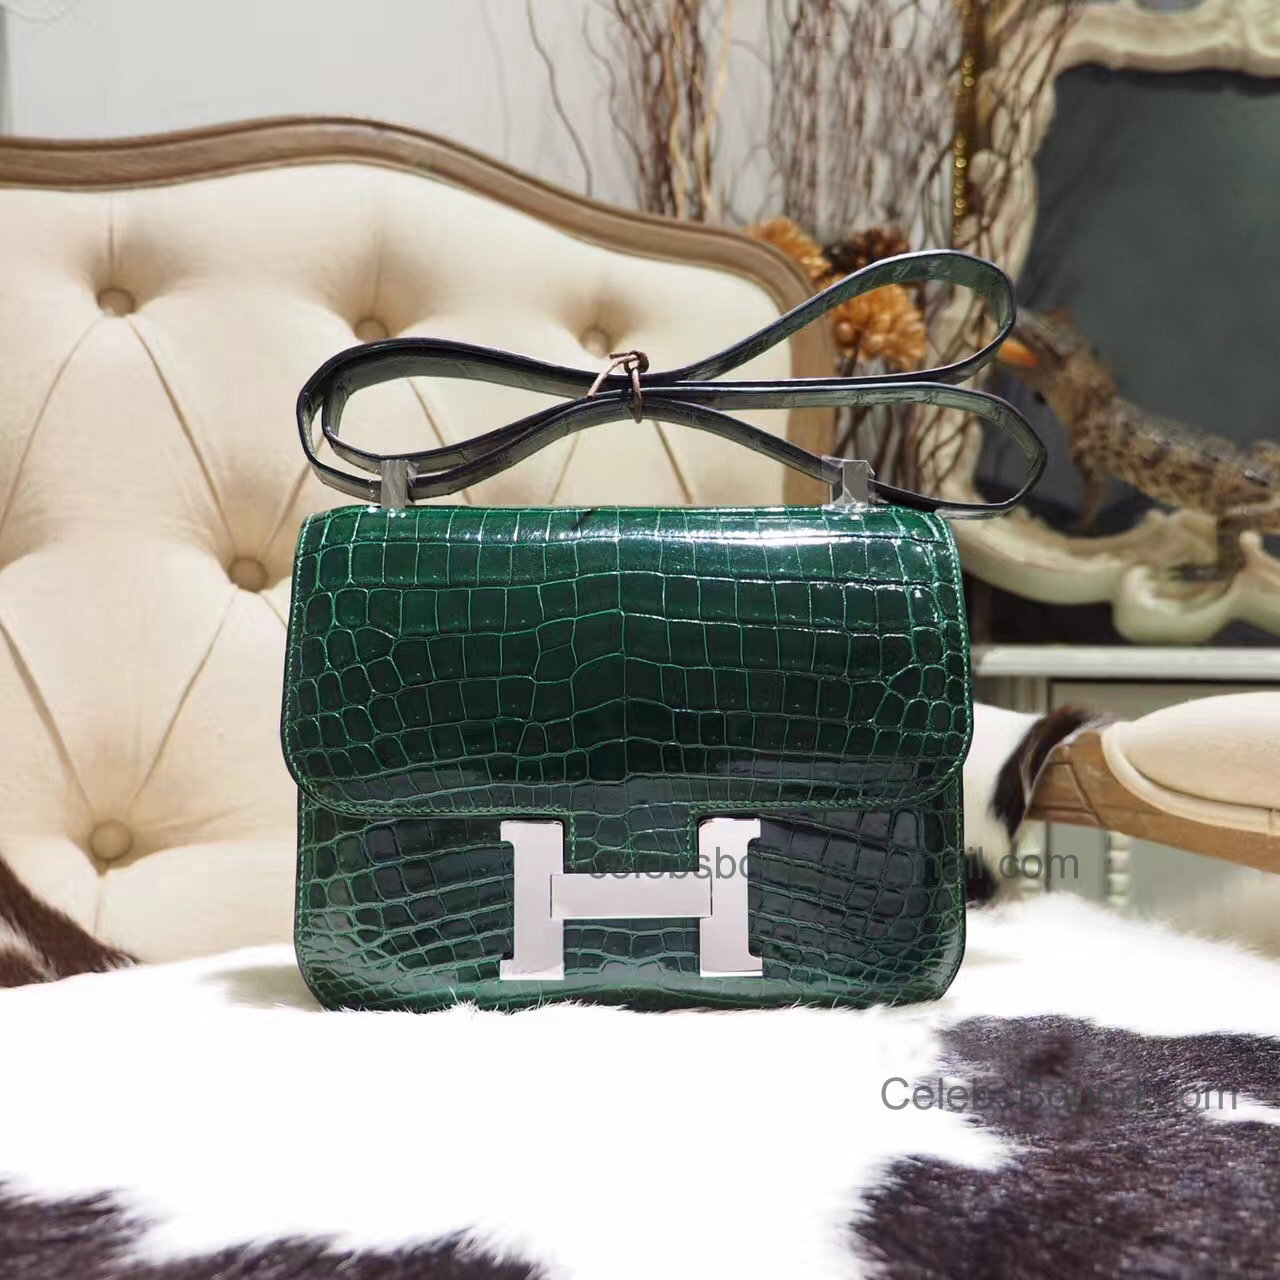 Replica Hermes Constance 23 Bag in ck67 Vert Fonce Shiny Nile Croc PHW